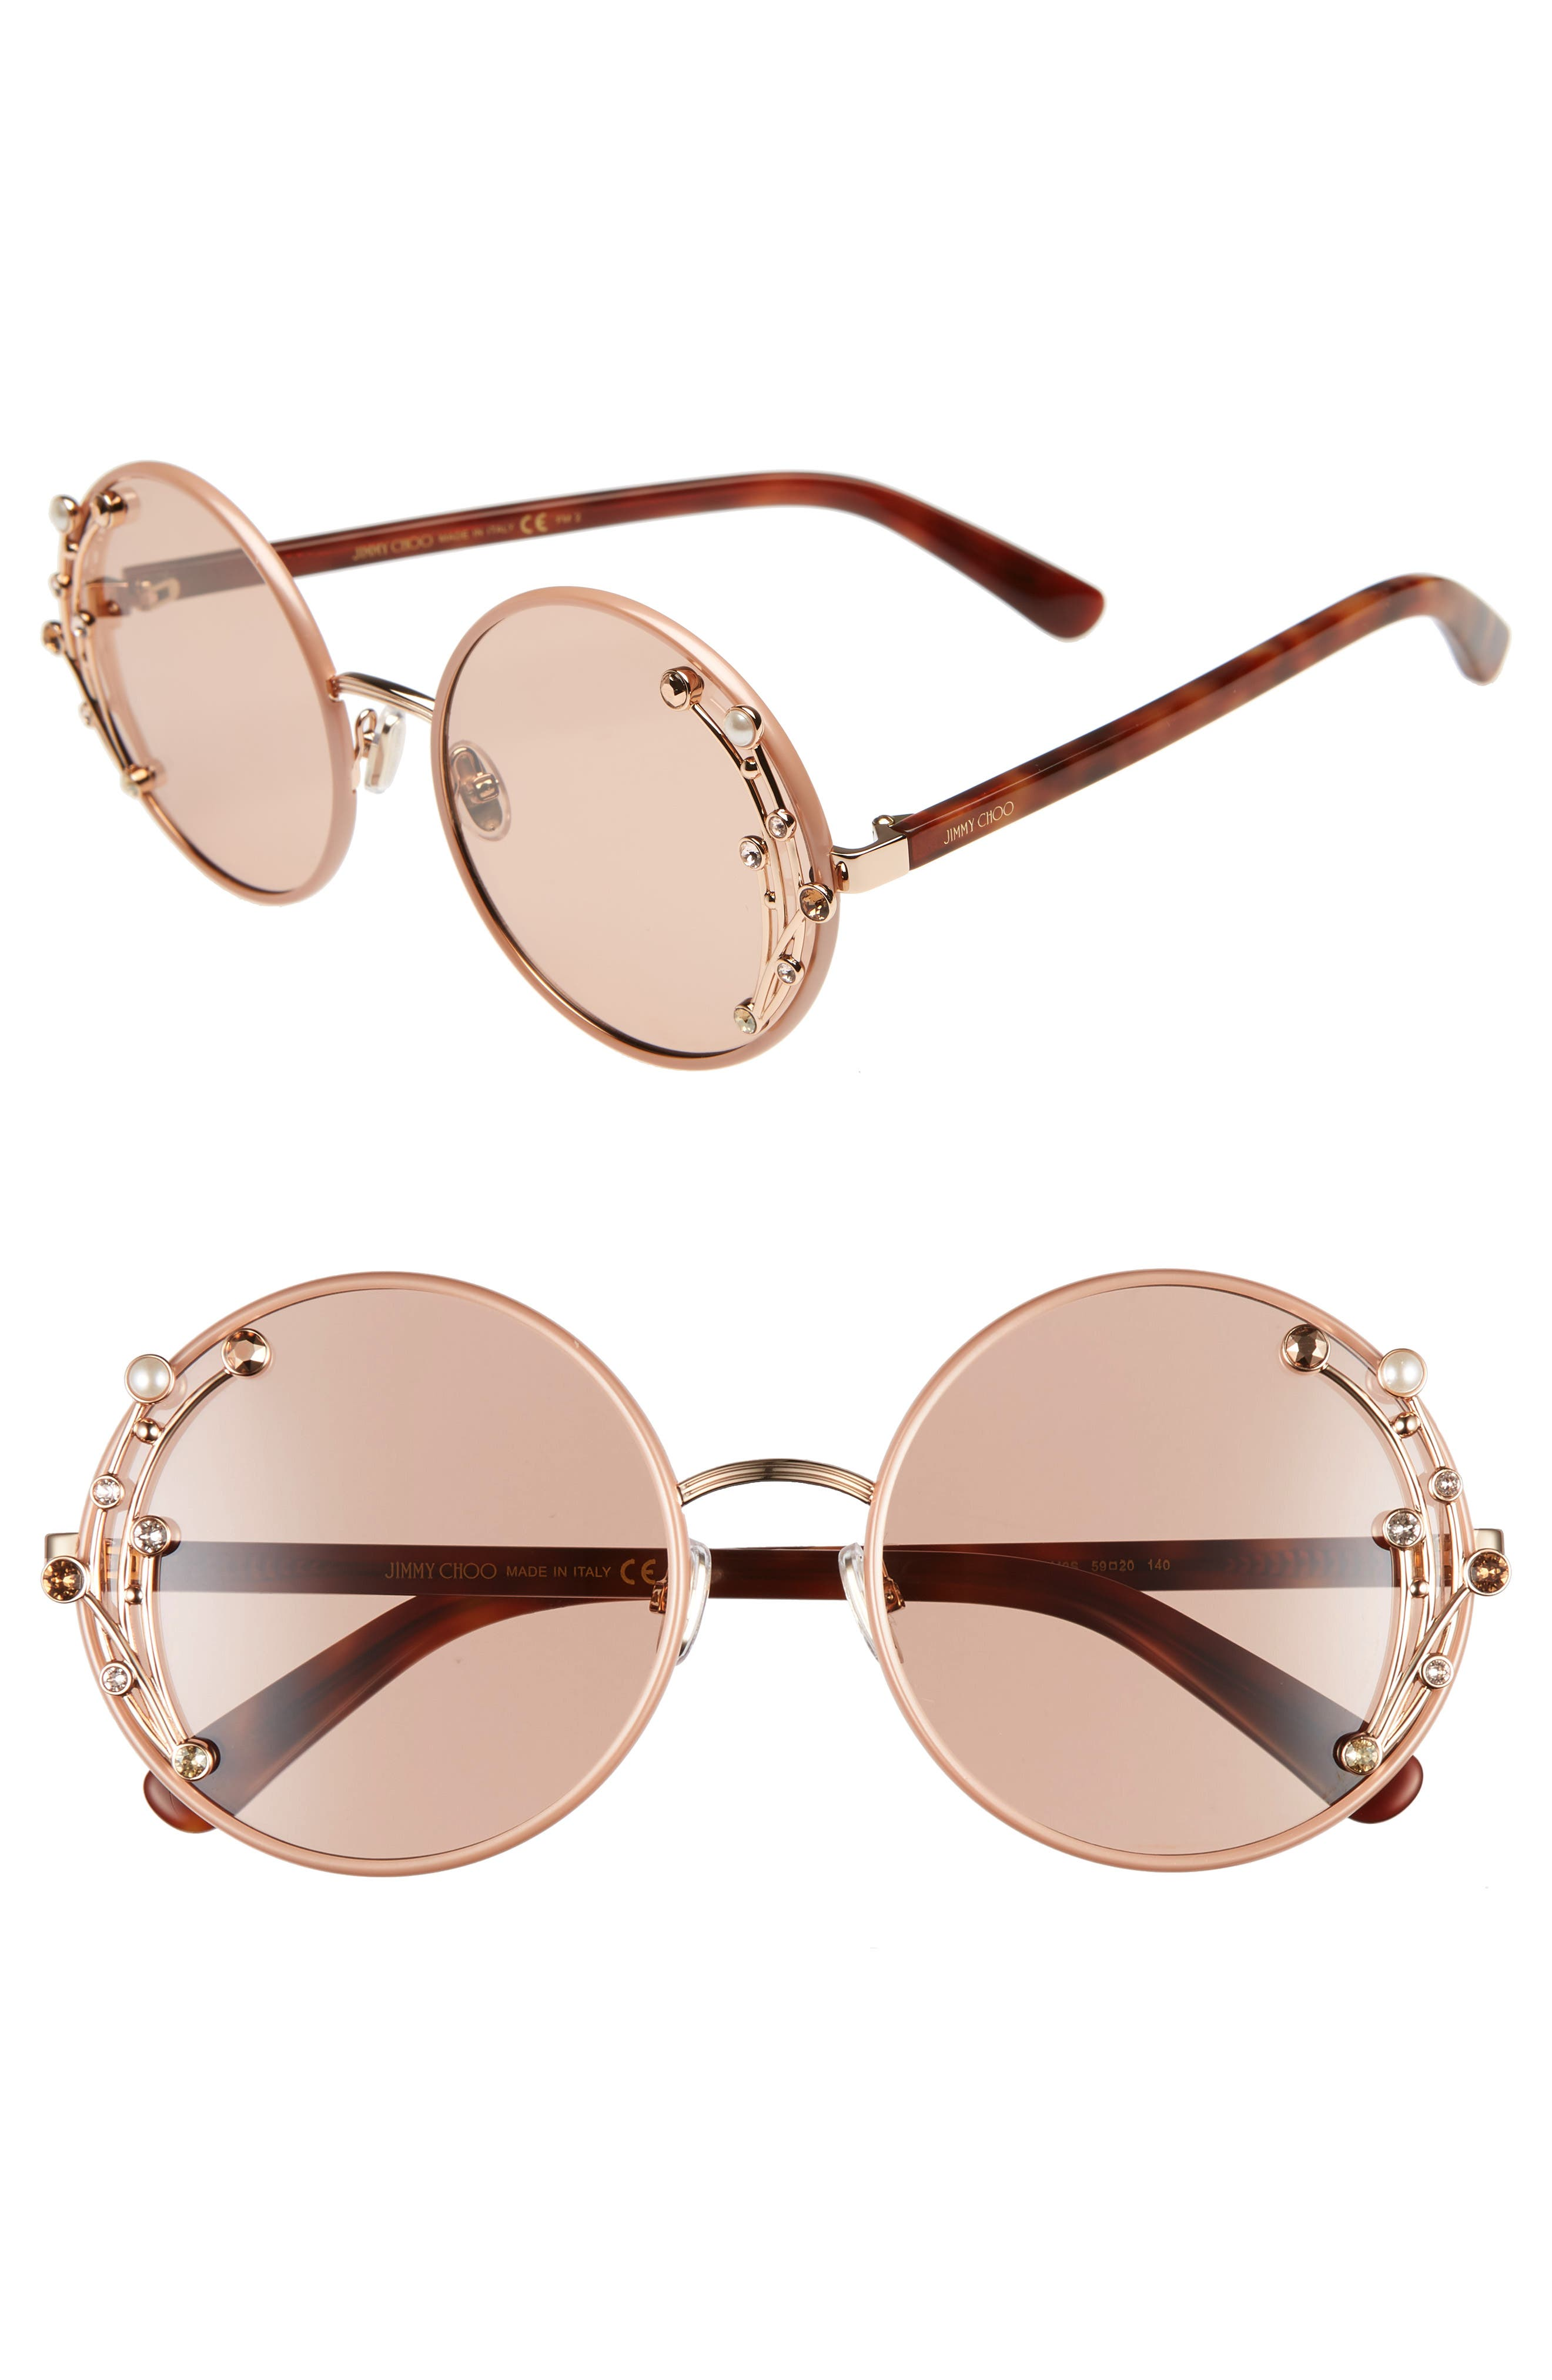 945aed3e59ba Jimmy Choo Sunglasses for Women | Nordstrom